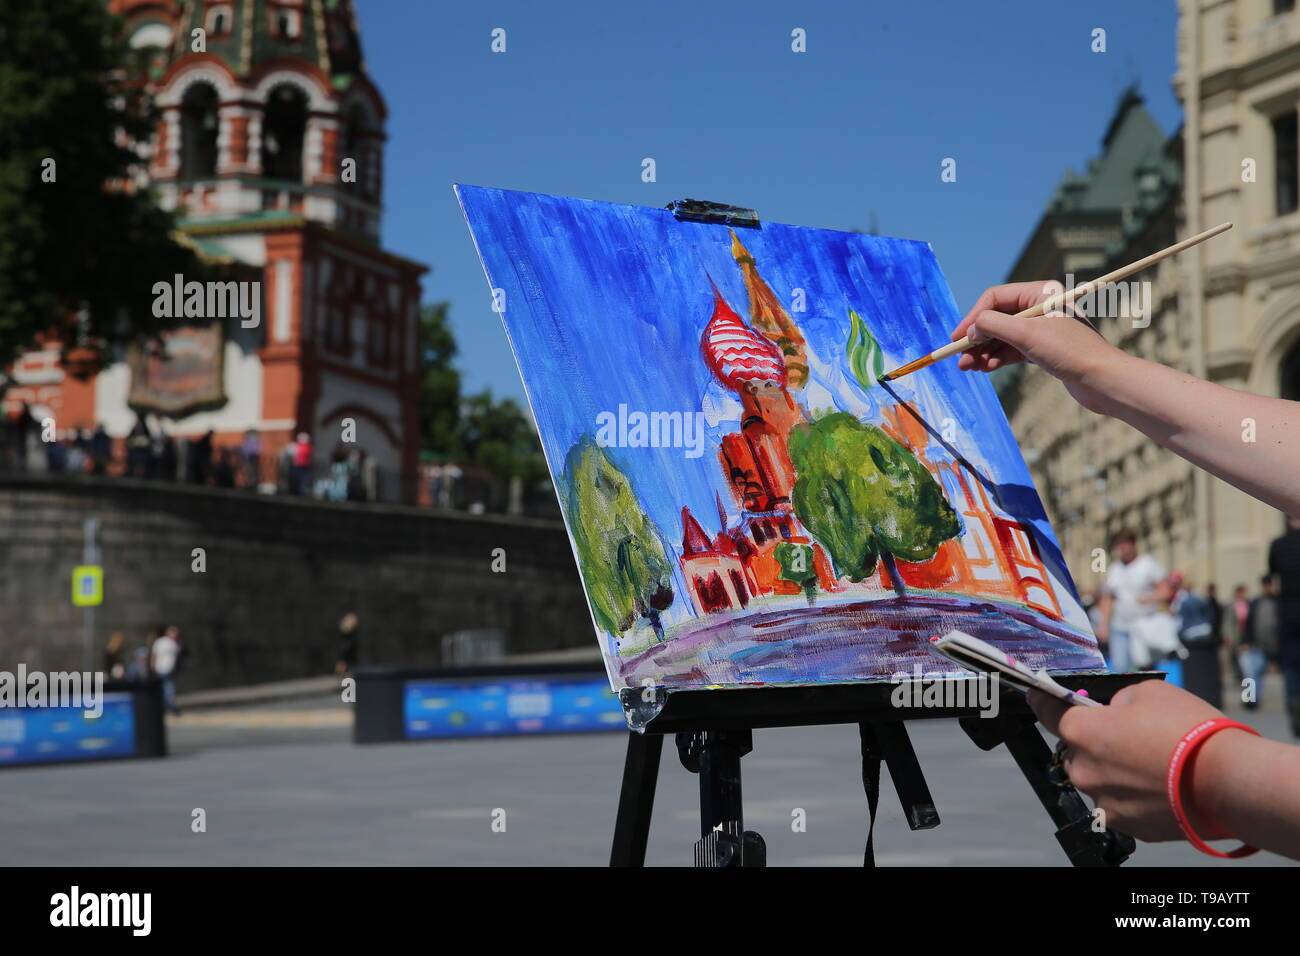 Moscow, Russia. 18th May, 2019. MOSCOW, RUSSIA - MAY 18, 2019: A woman during the 9th Draw St Basil's Cathedral art festival in Red Square. Gavriil Grigorov/TASS Credit: ITAR-TASS News Agency/Alamy Live News - Stock Image